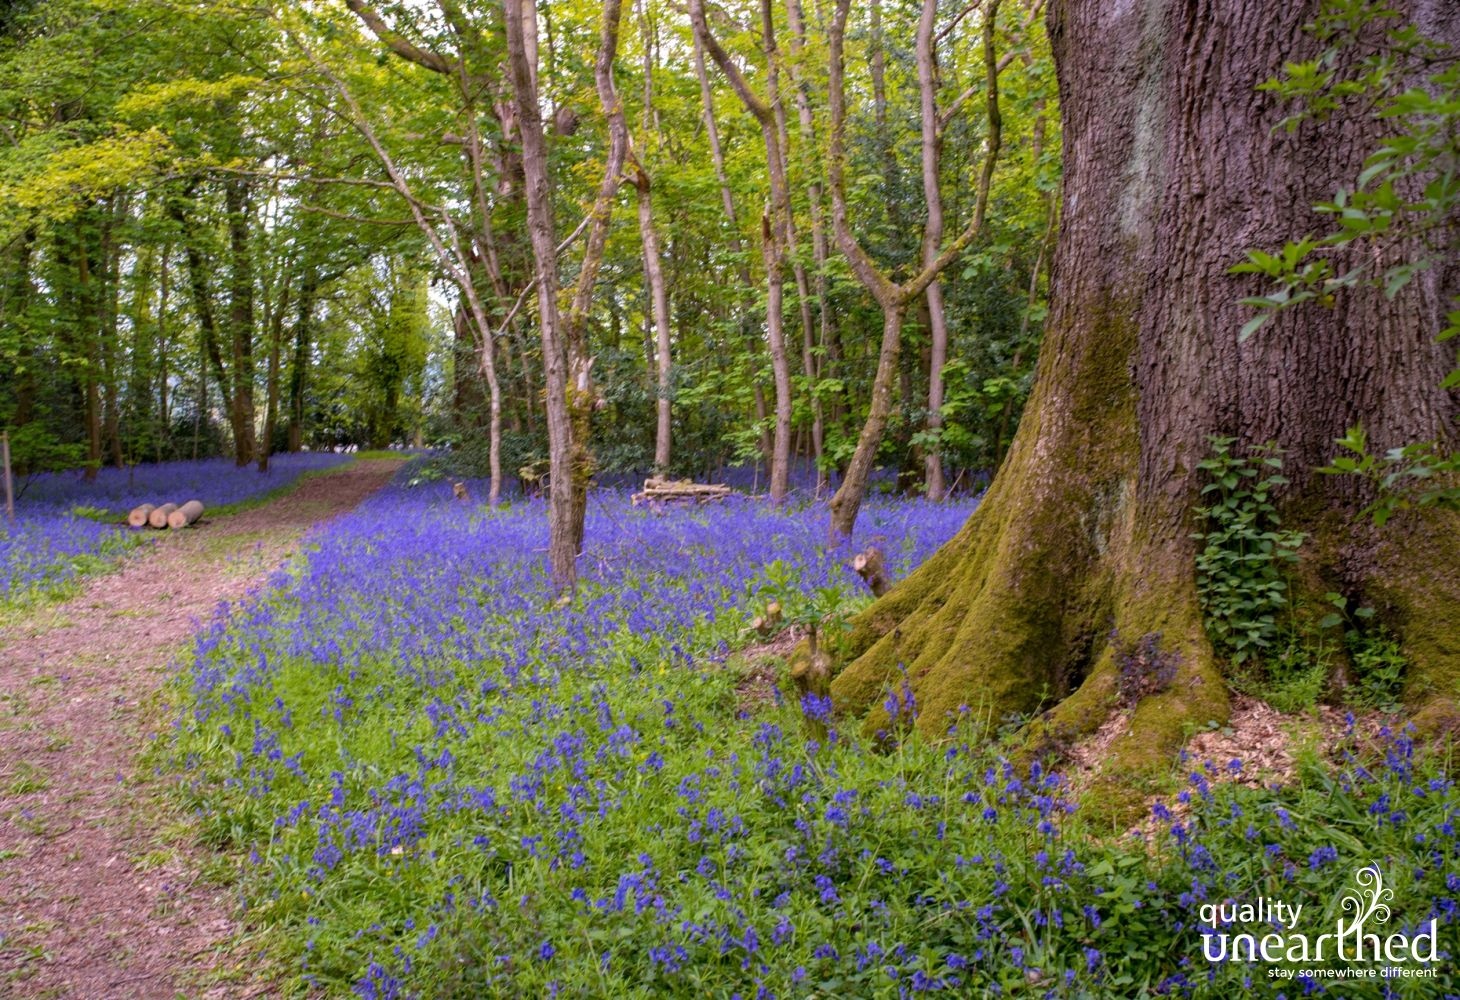 Bluebell woods by this Mid Wales glamping yurt